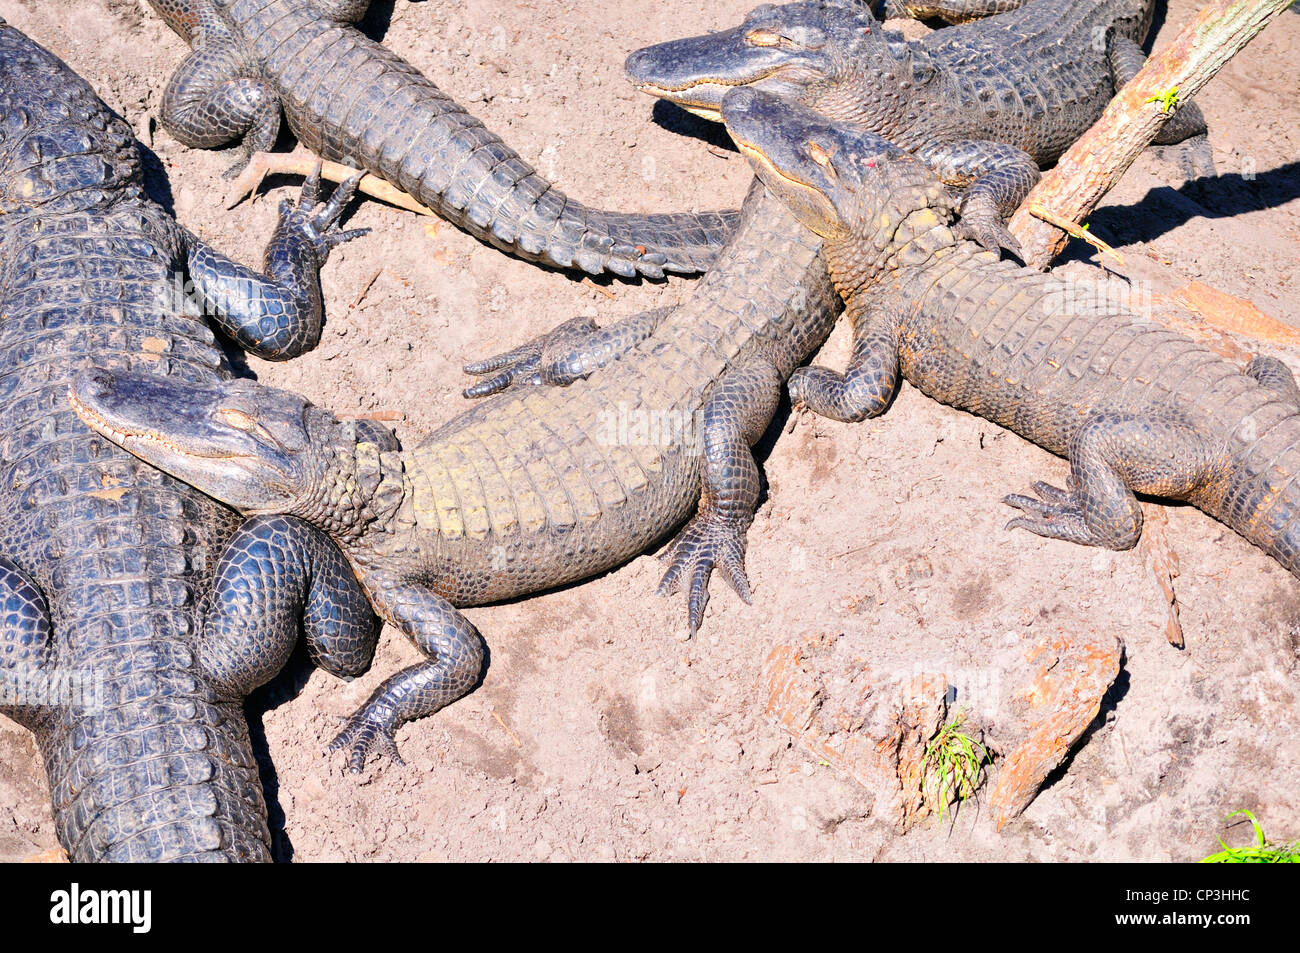 Group of sleeping alligators resting on each other - Stock Image